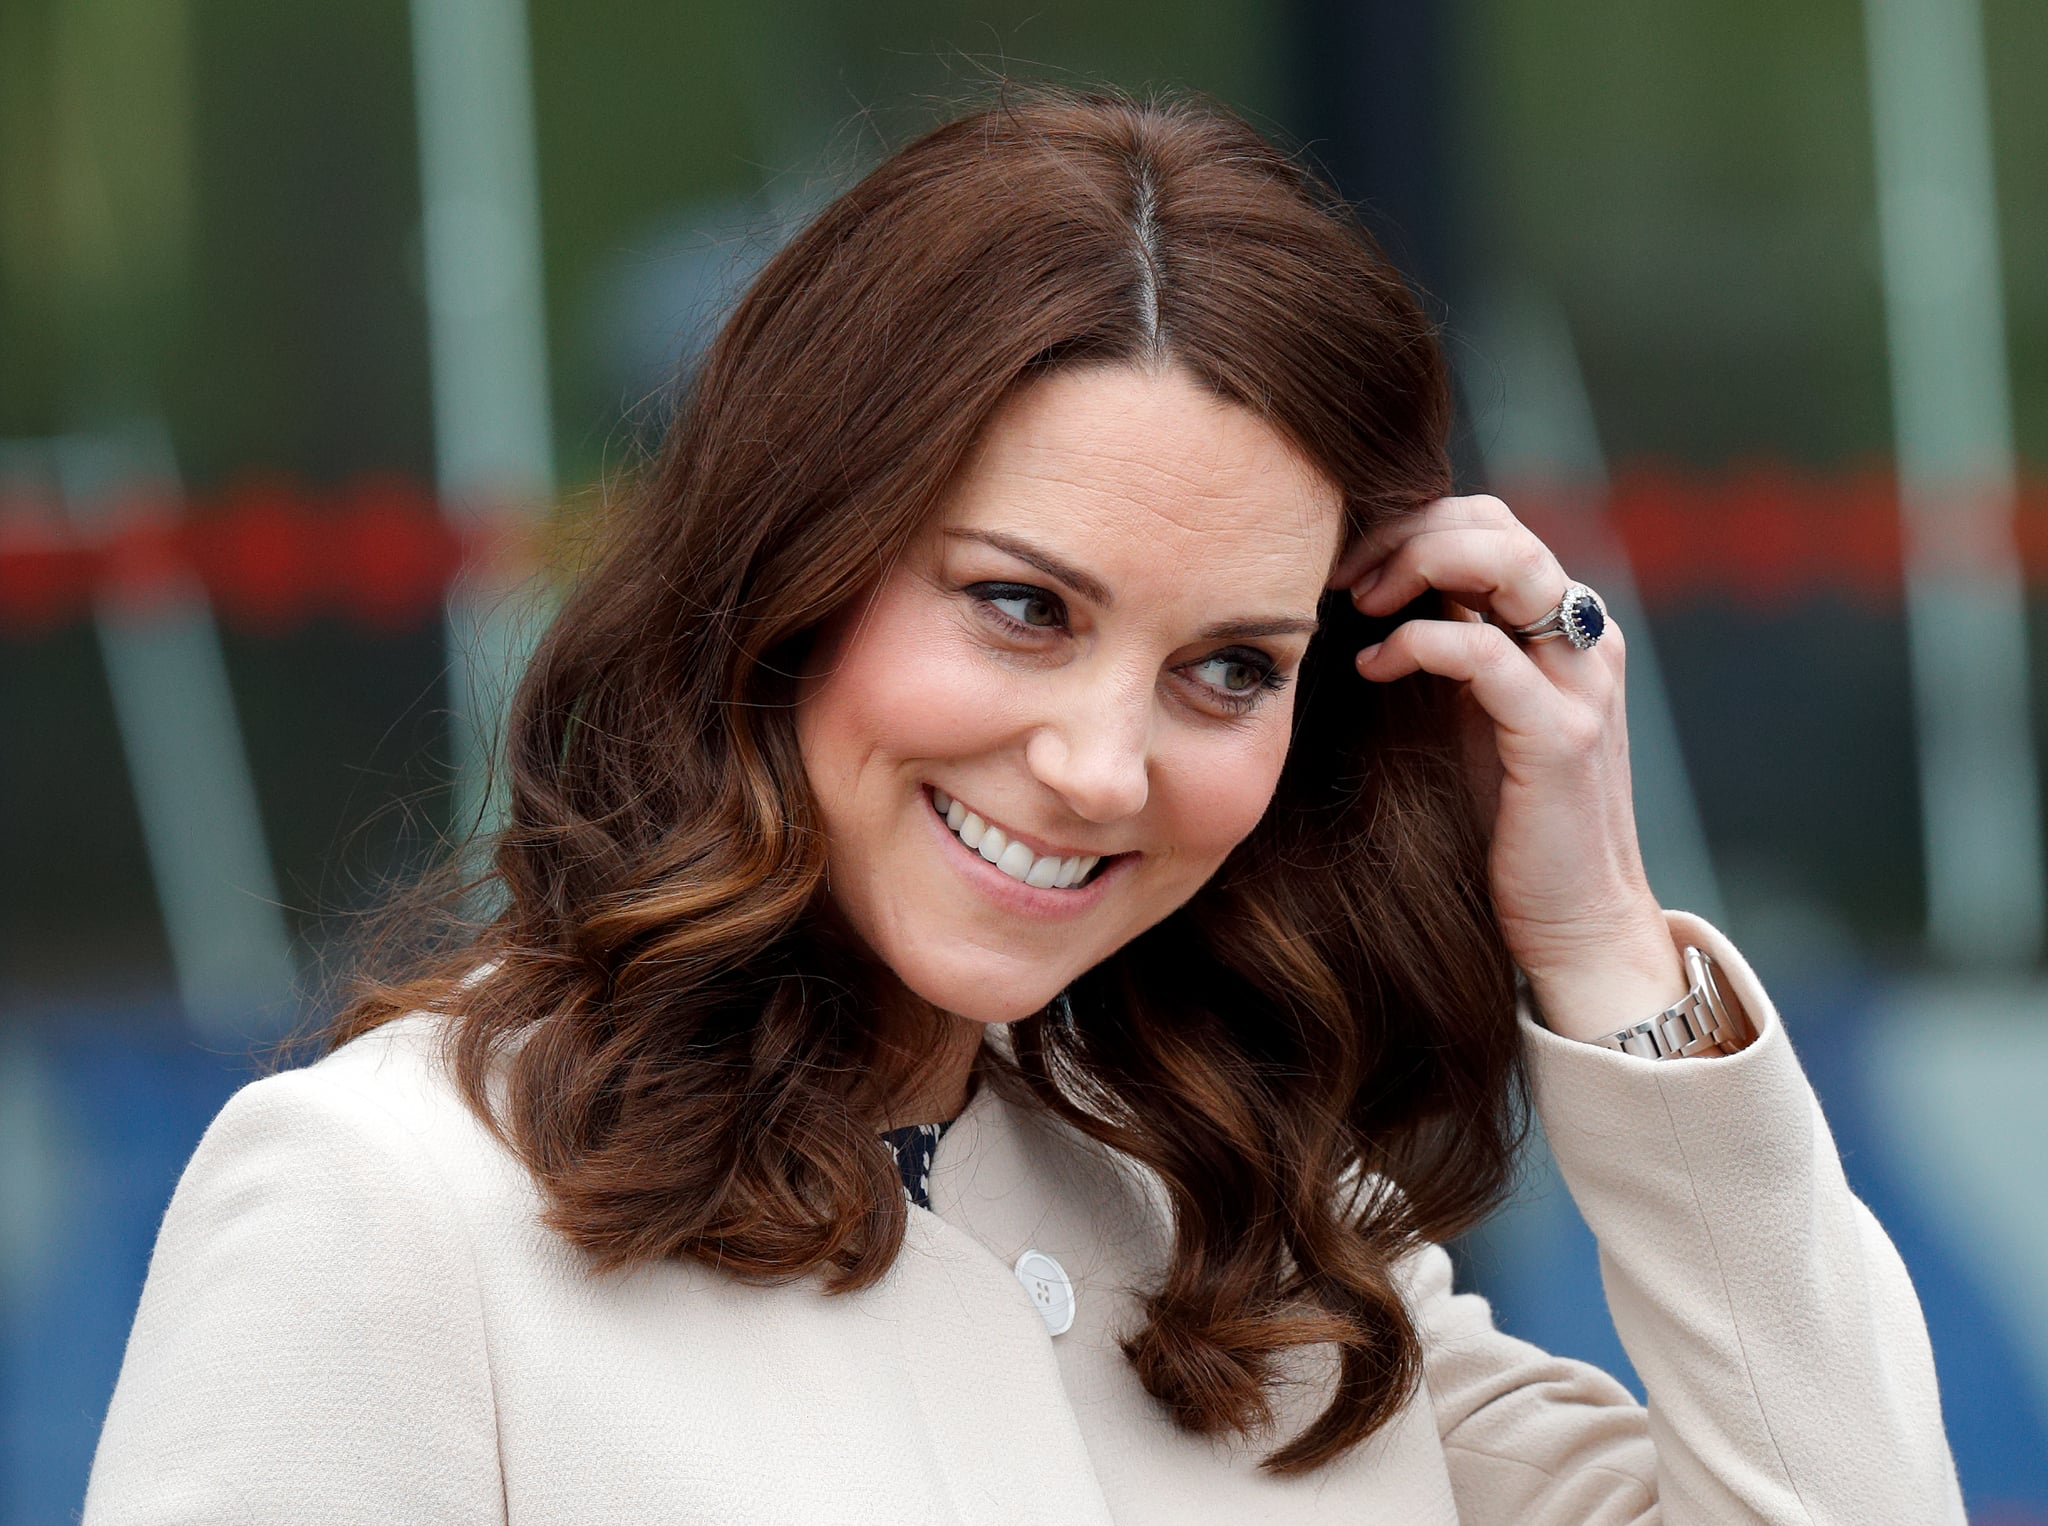 Kate Middleton Actually Wears 3 Rings on Her Ring Finger — Here's What They Represent